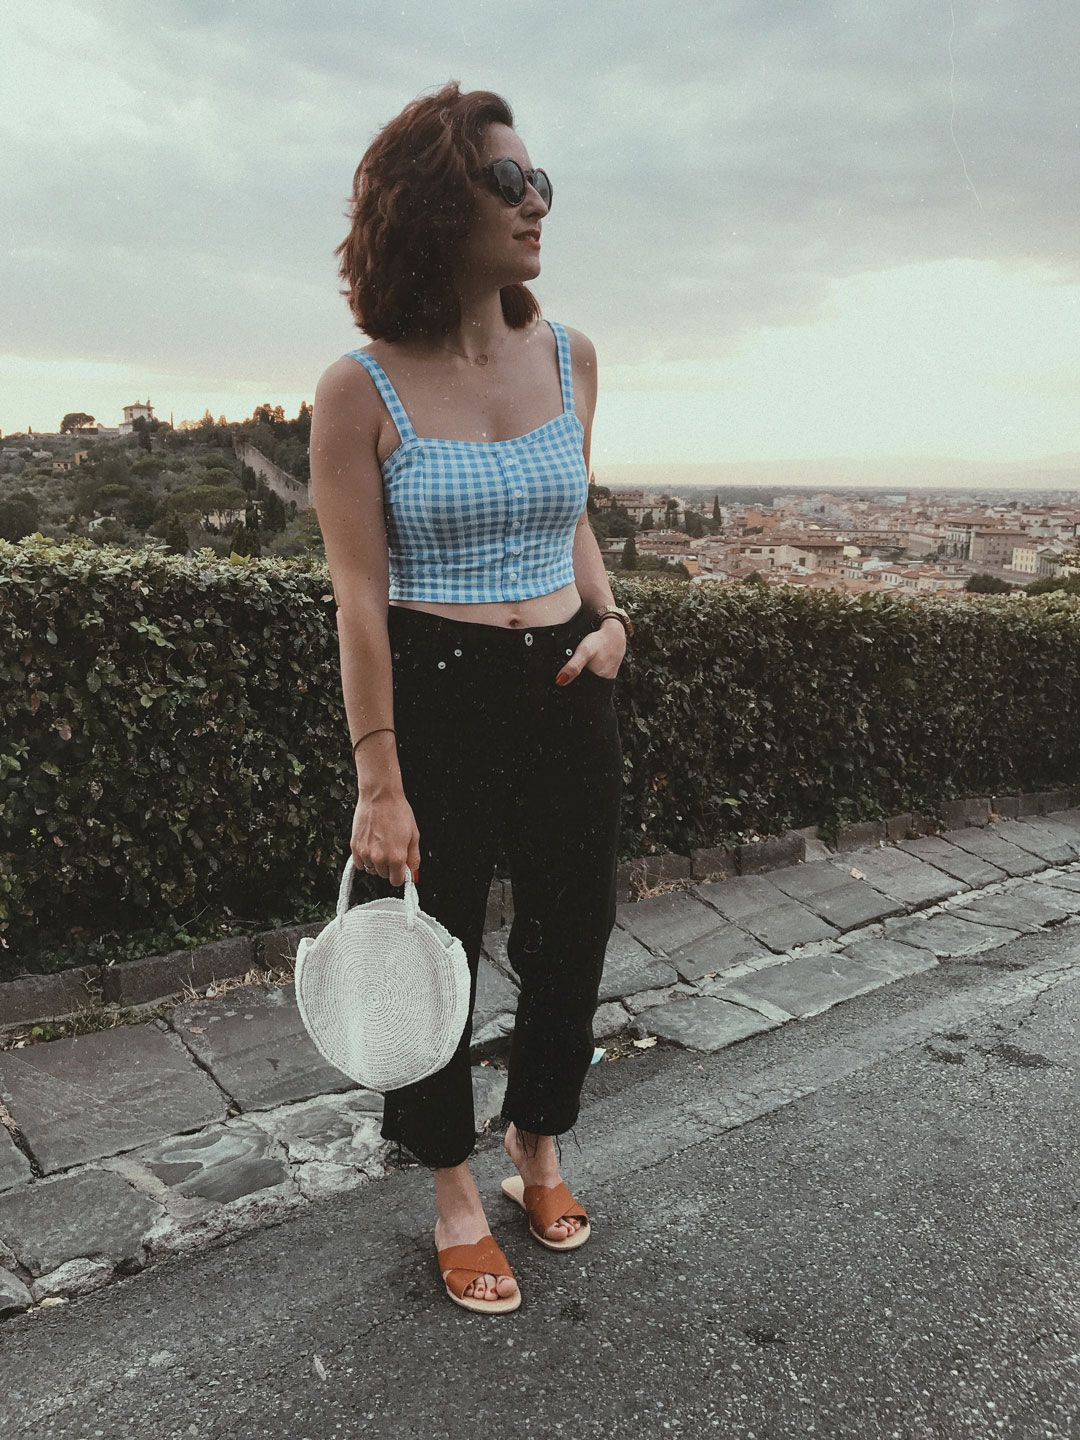 My Italian trip and how to dress for a hot summer in Tuscany   Gingham crop top   Round crochet bag   Effortless chic Italian style   Romantic look   Chic look   Summer outfit inspiration   Straw bag   Raffia bag   She talks Glam   Saida Antolin   Spanish Blogger   Italian Fashion